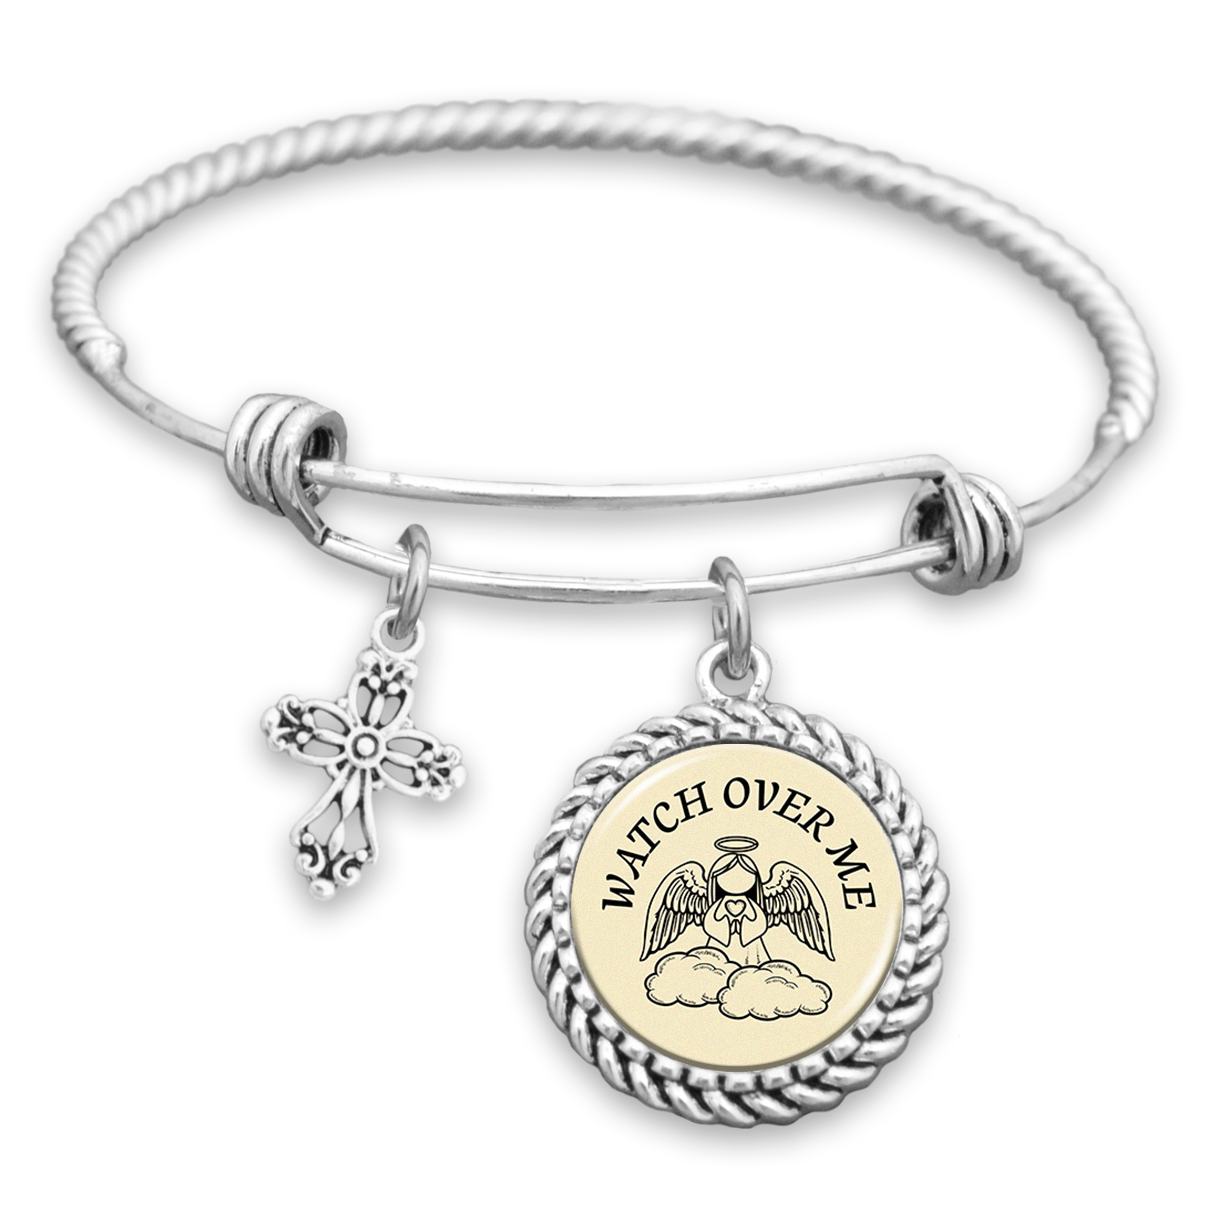 Watch Over Me Charm Bracelet